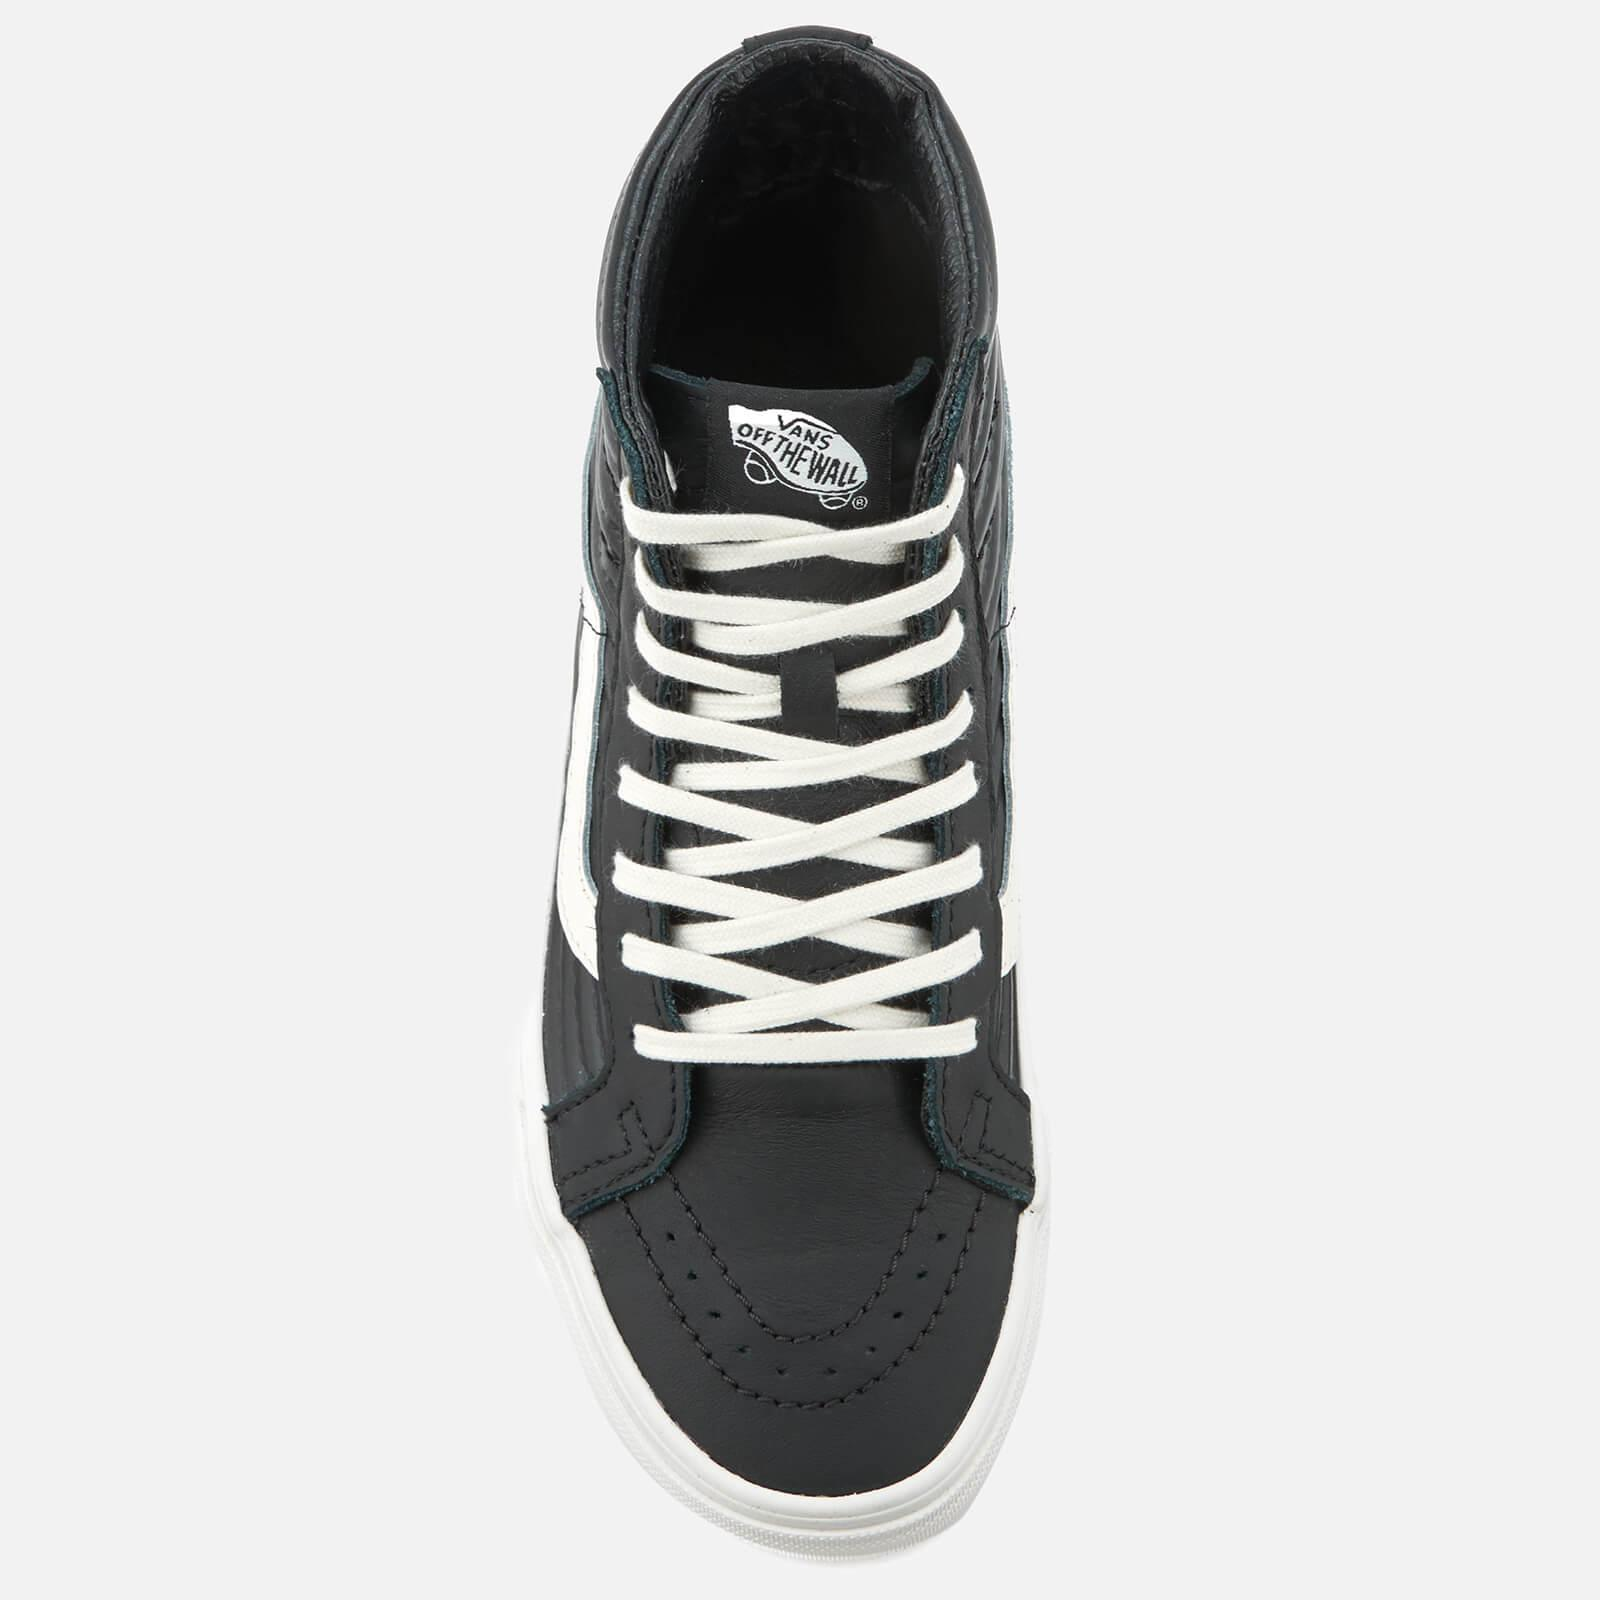 a8598b7702cc Vans Women's Sk8-hi Reissue Moto Leather Hi-top Trainers in Black - Lyst